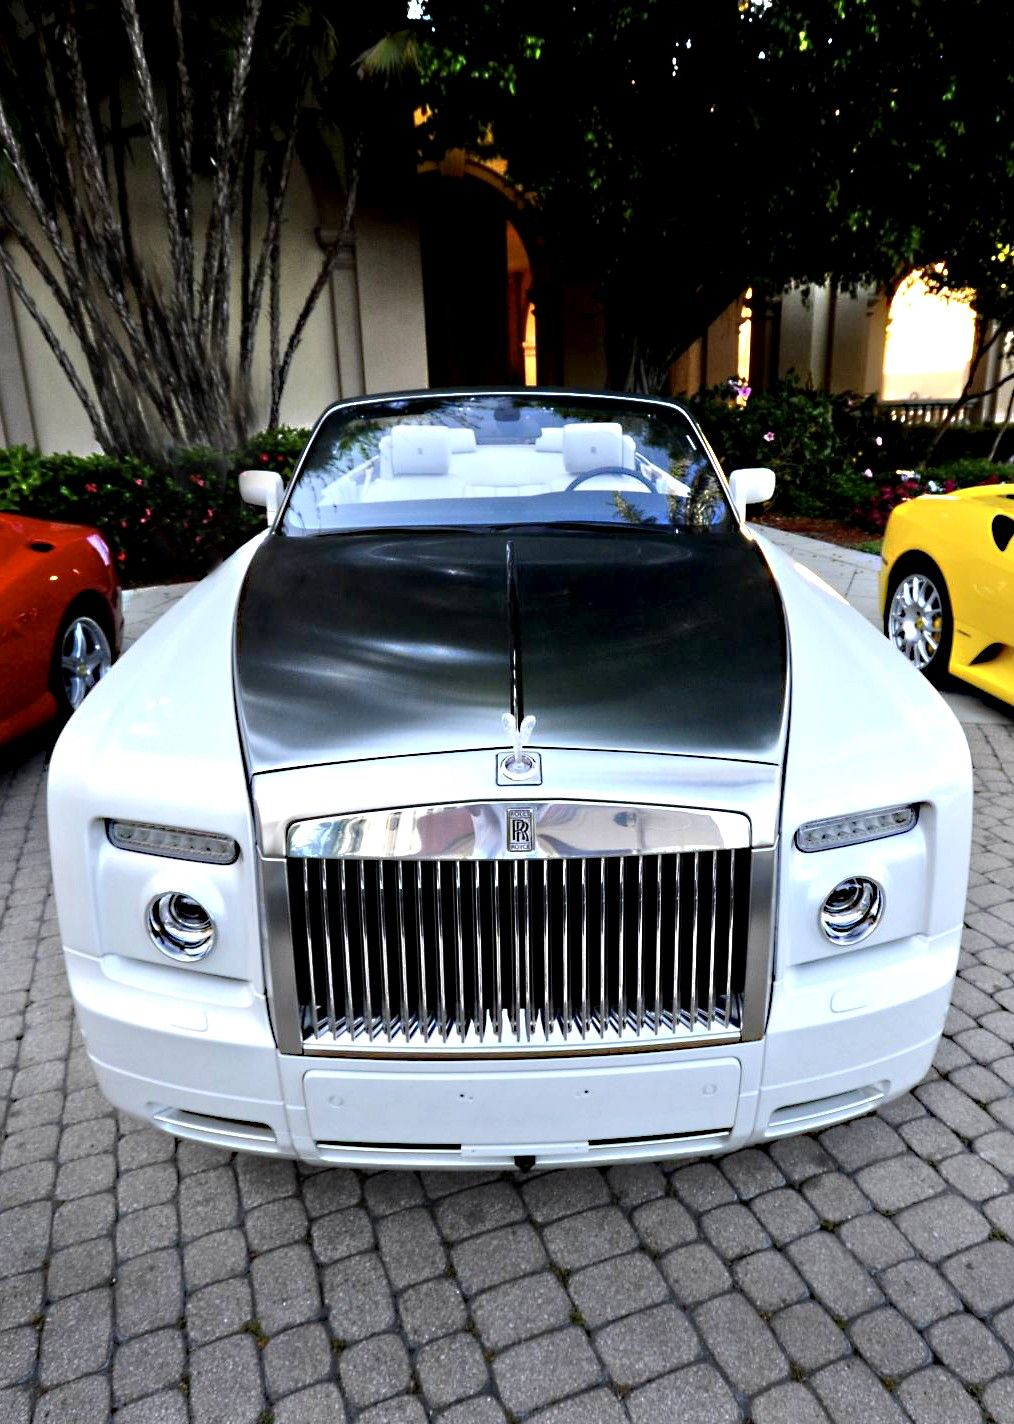 rolls royce advance auto parts is your source for quality auto parts